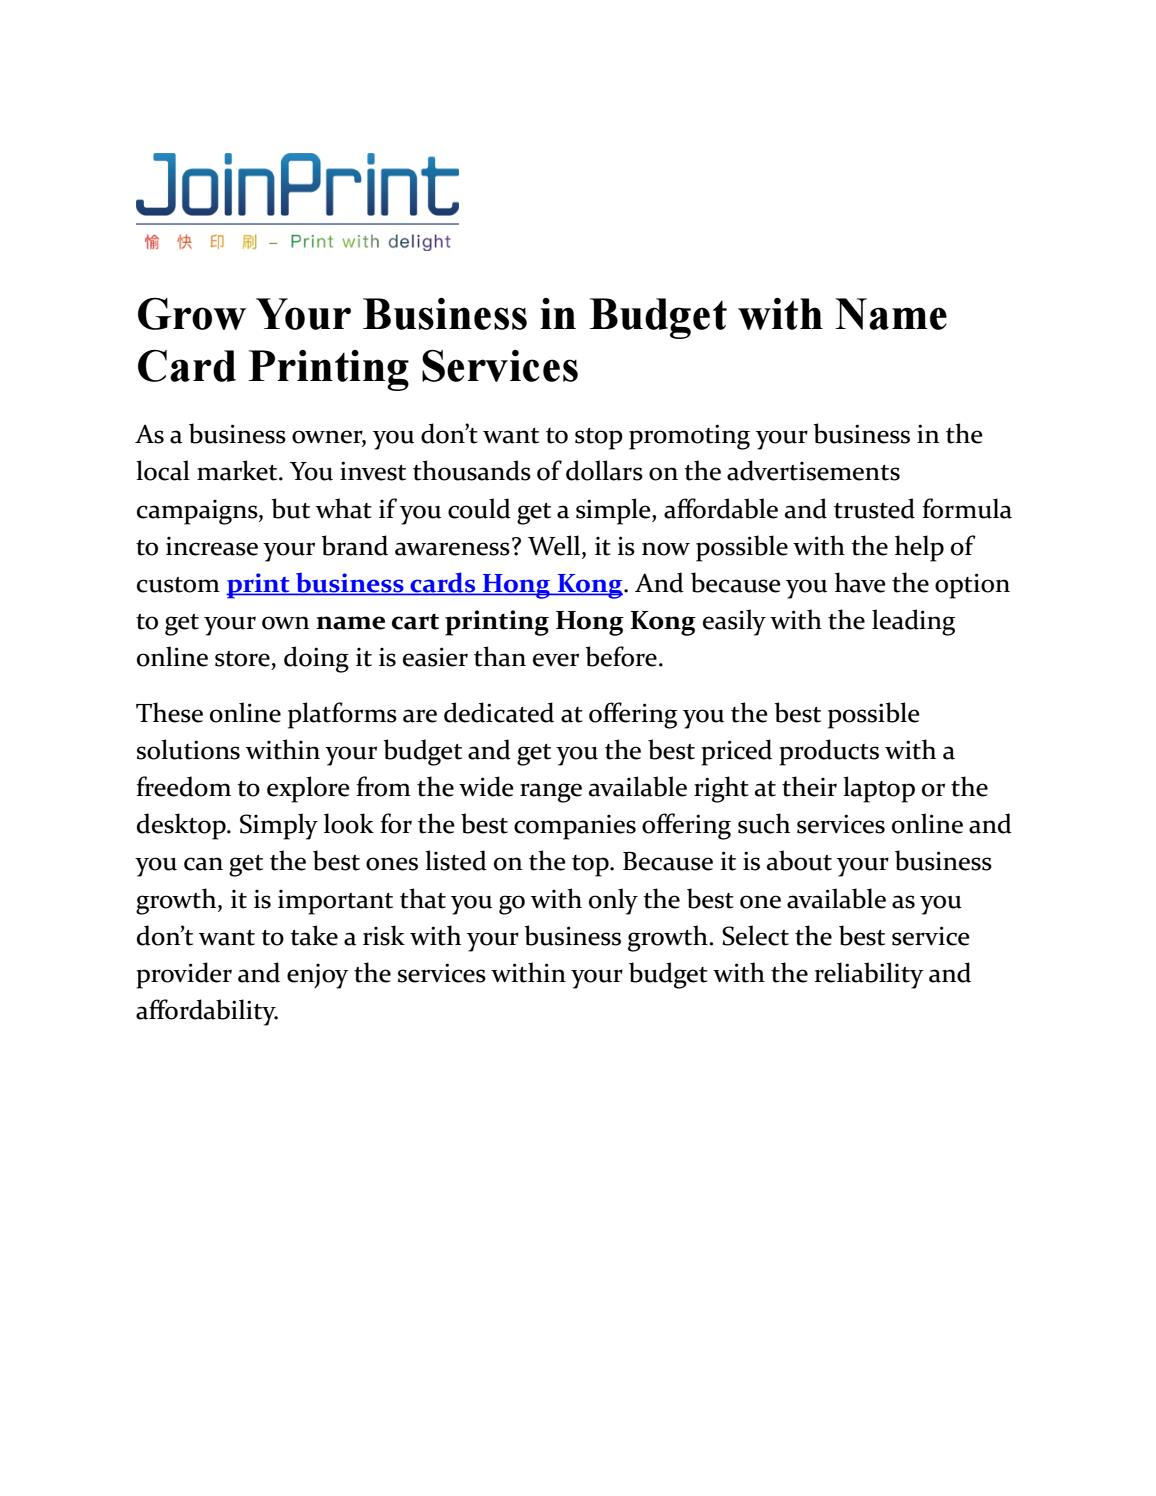 Grow your business in budget with name card printing services by grow your business in budget with name card printing services by joinprint issuu reheart